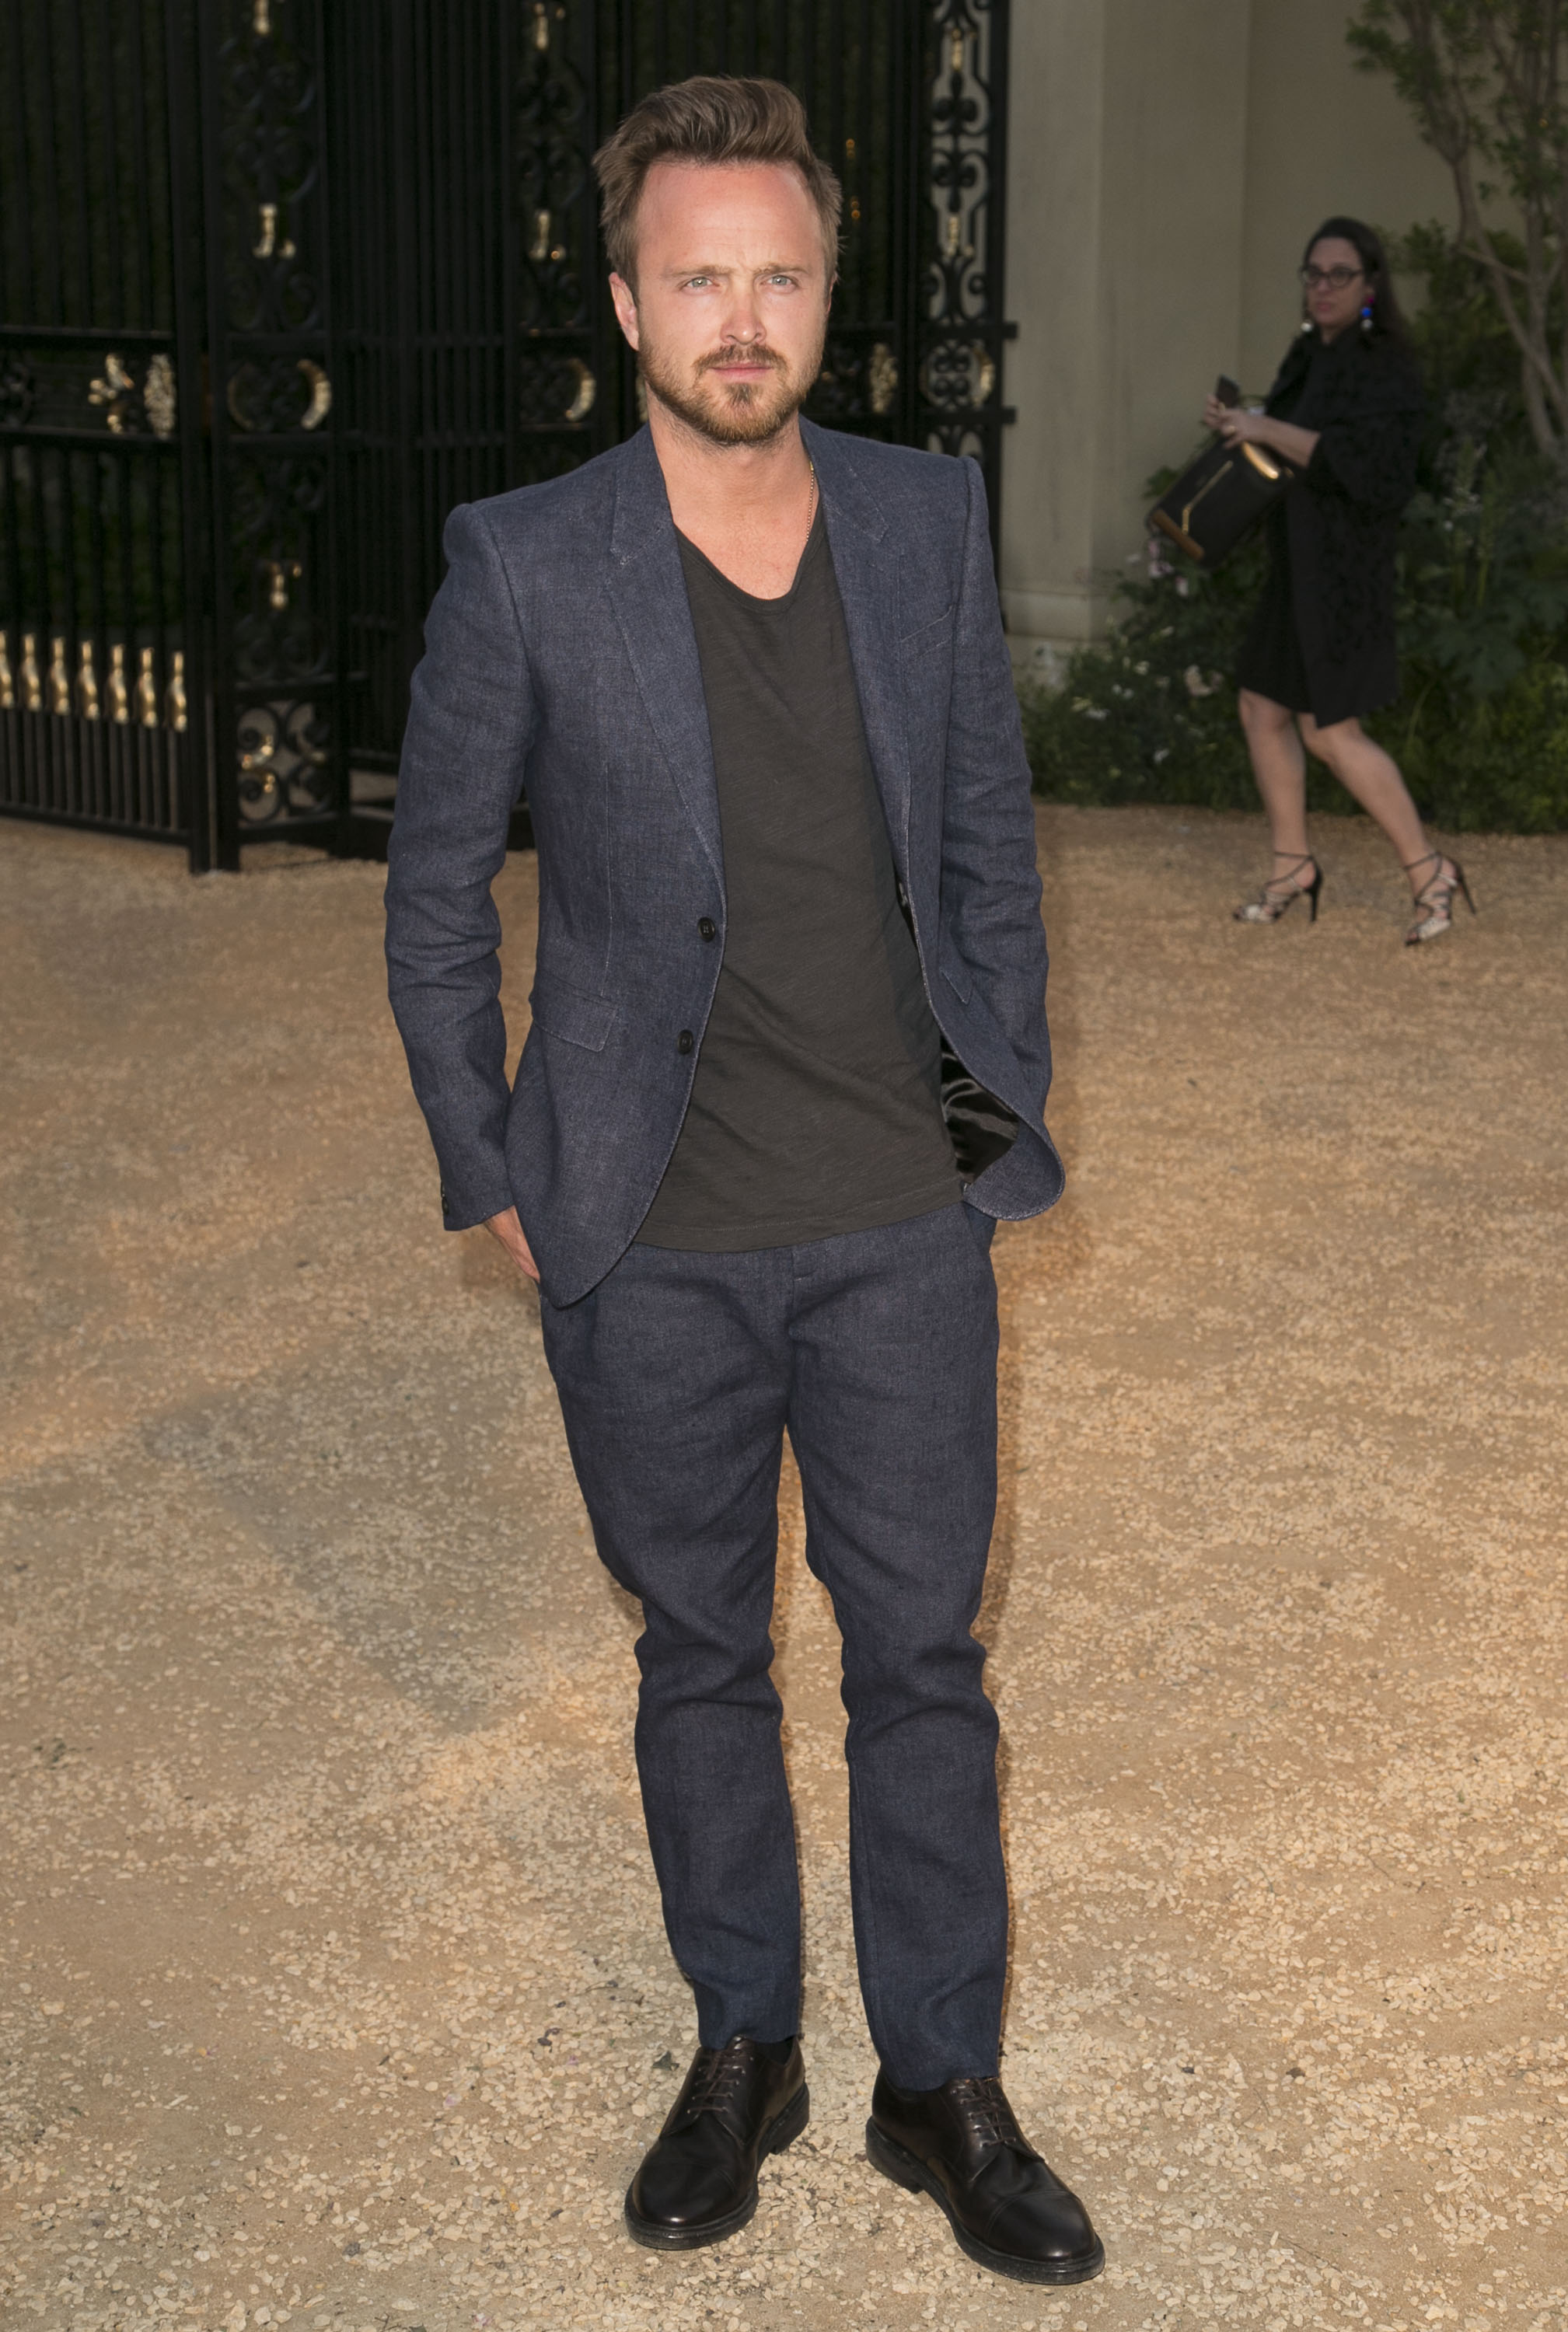 Aaron Paul attends the Burberry London in Los Angeles event at Griffith Observatory on April 17, 2015. (Brian To/WENN)